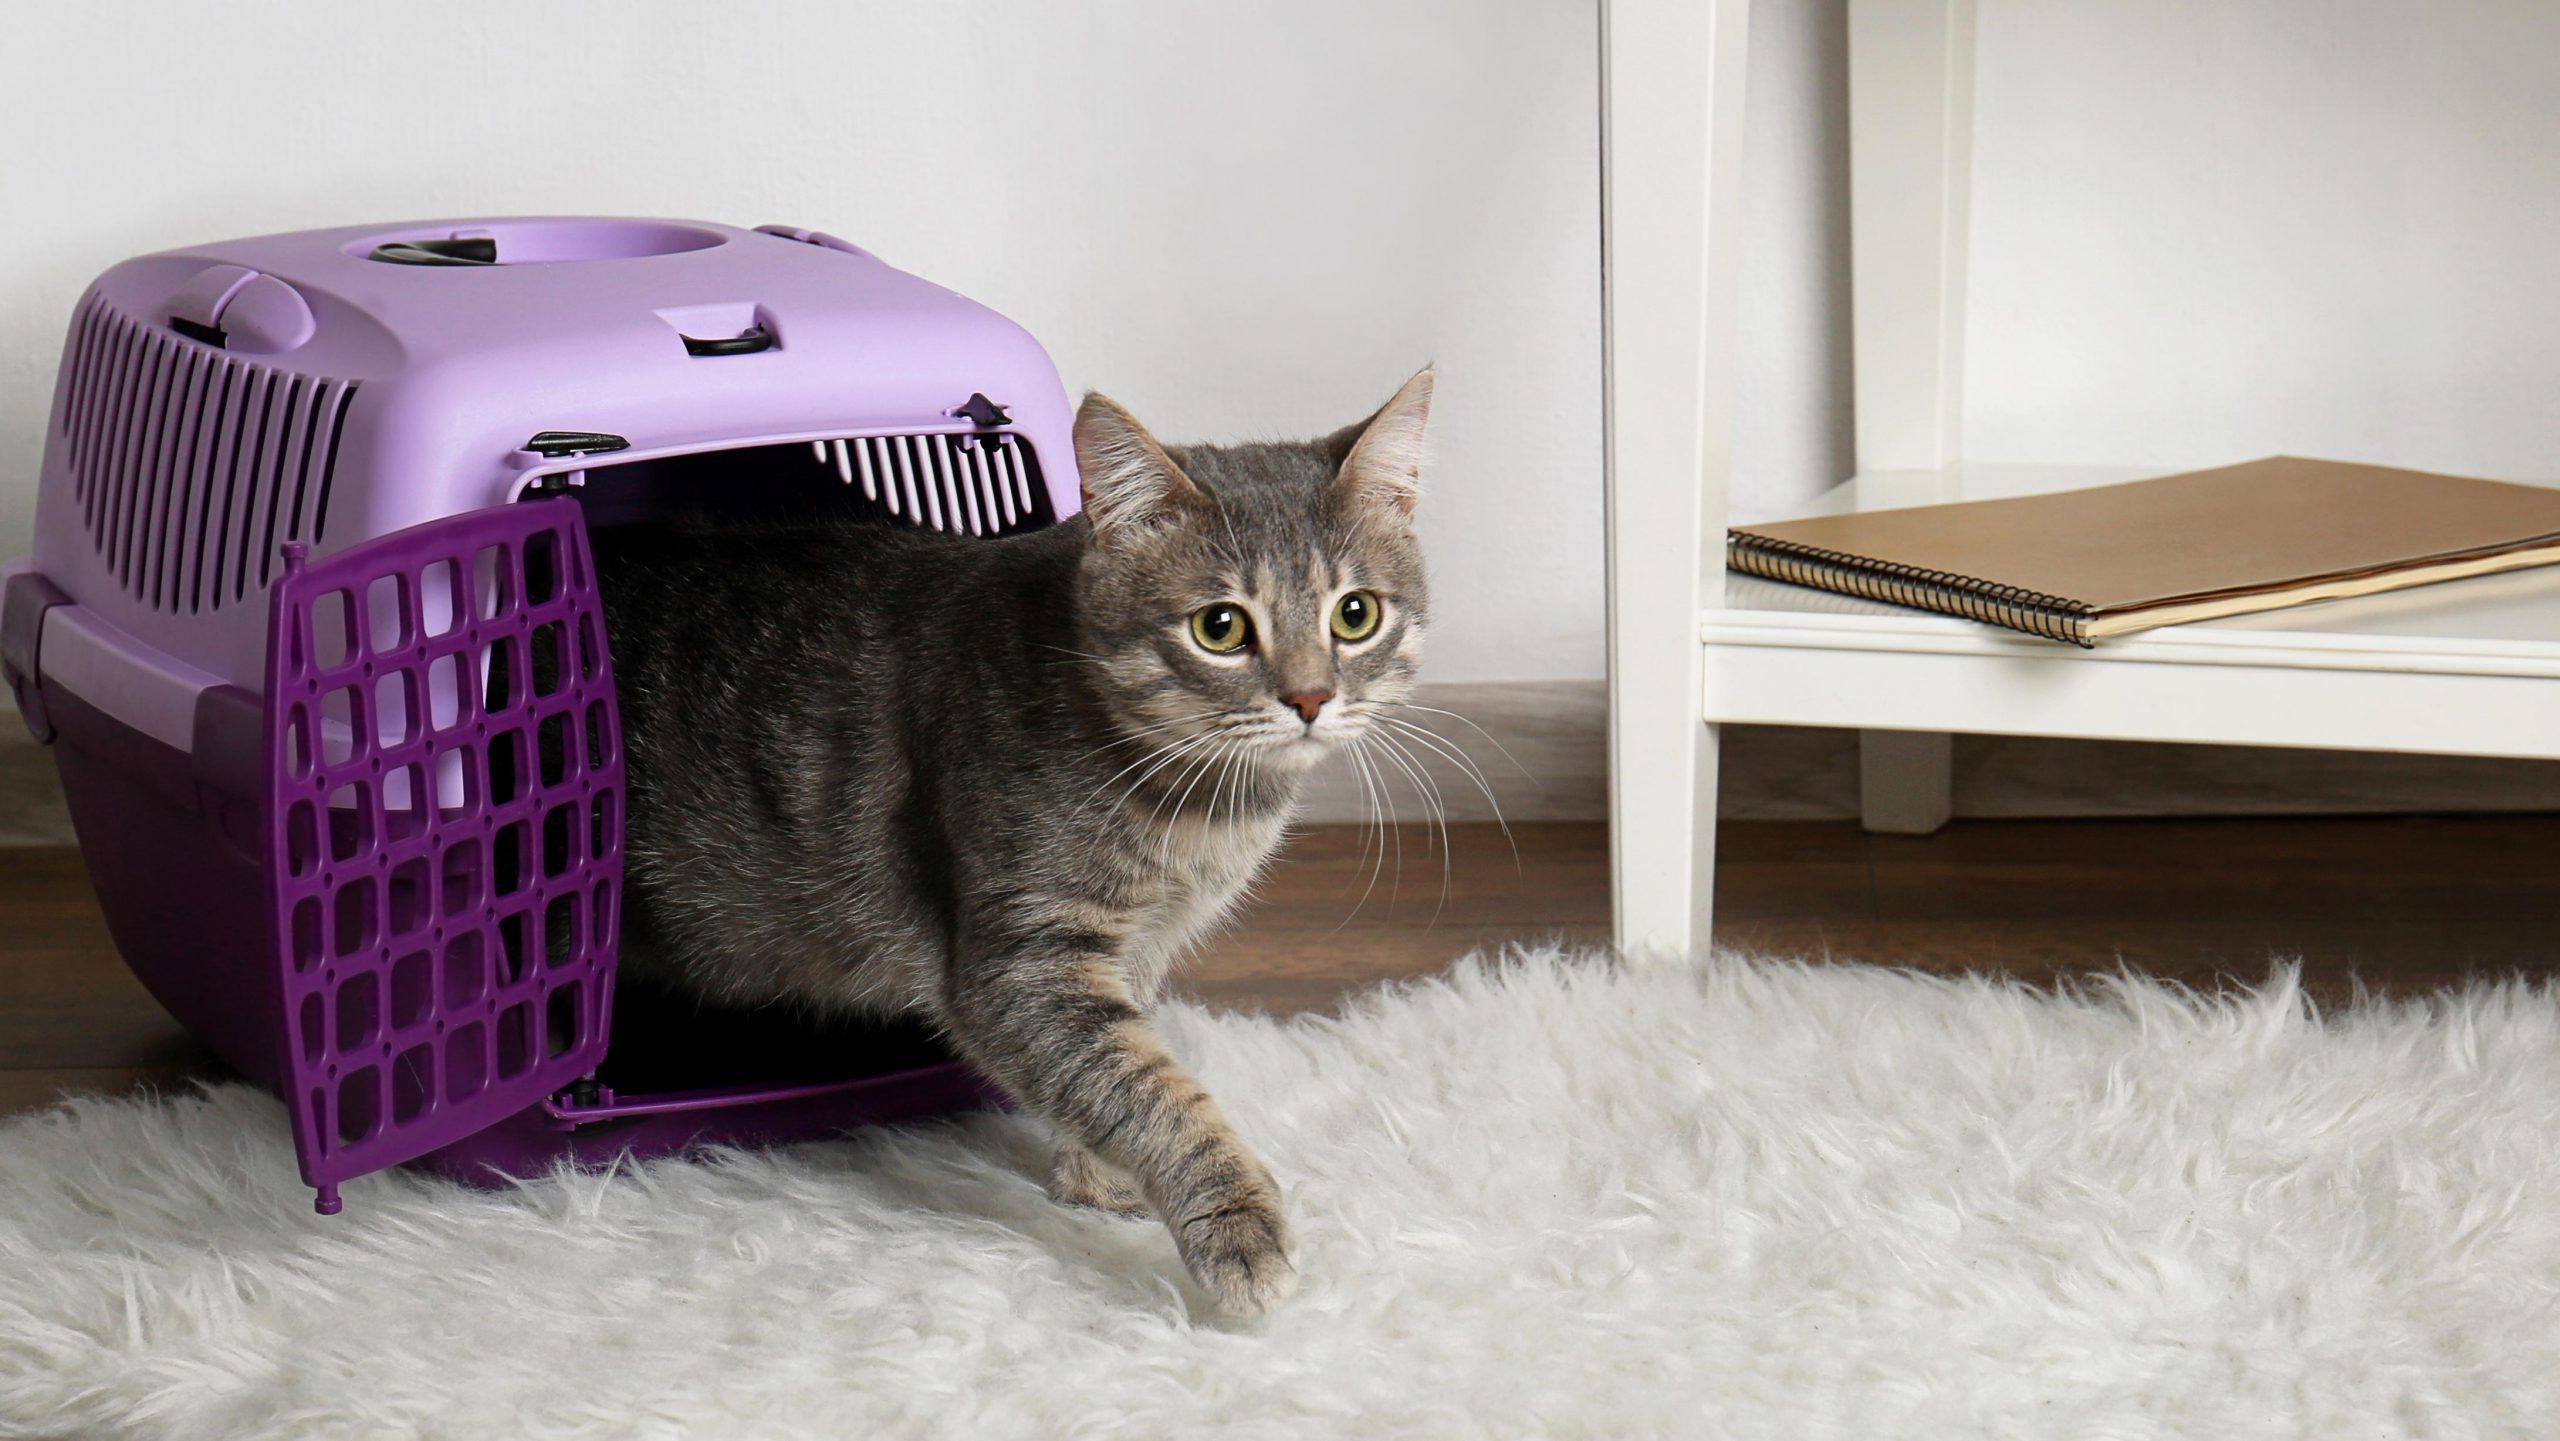 Cat in carrier box on floor at home